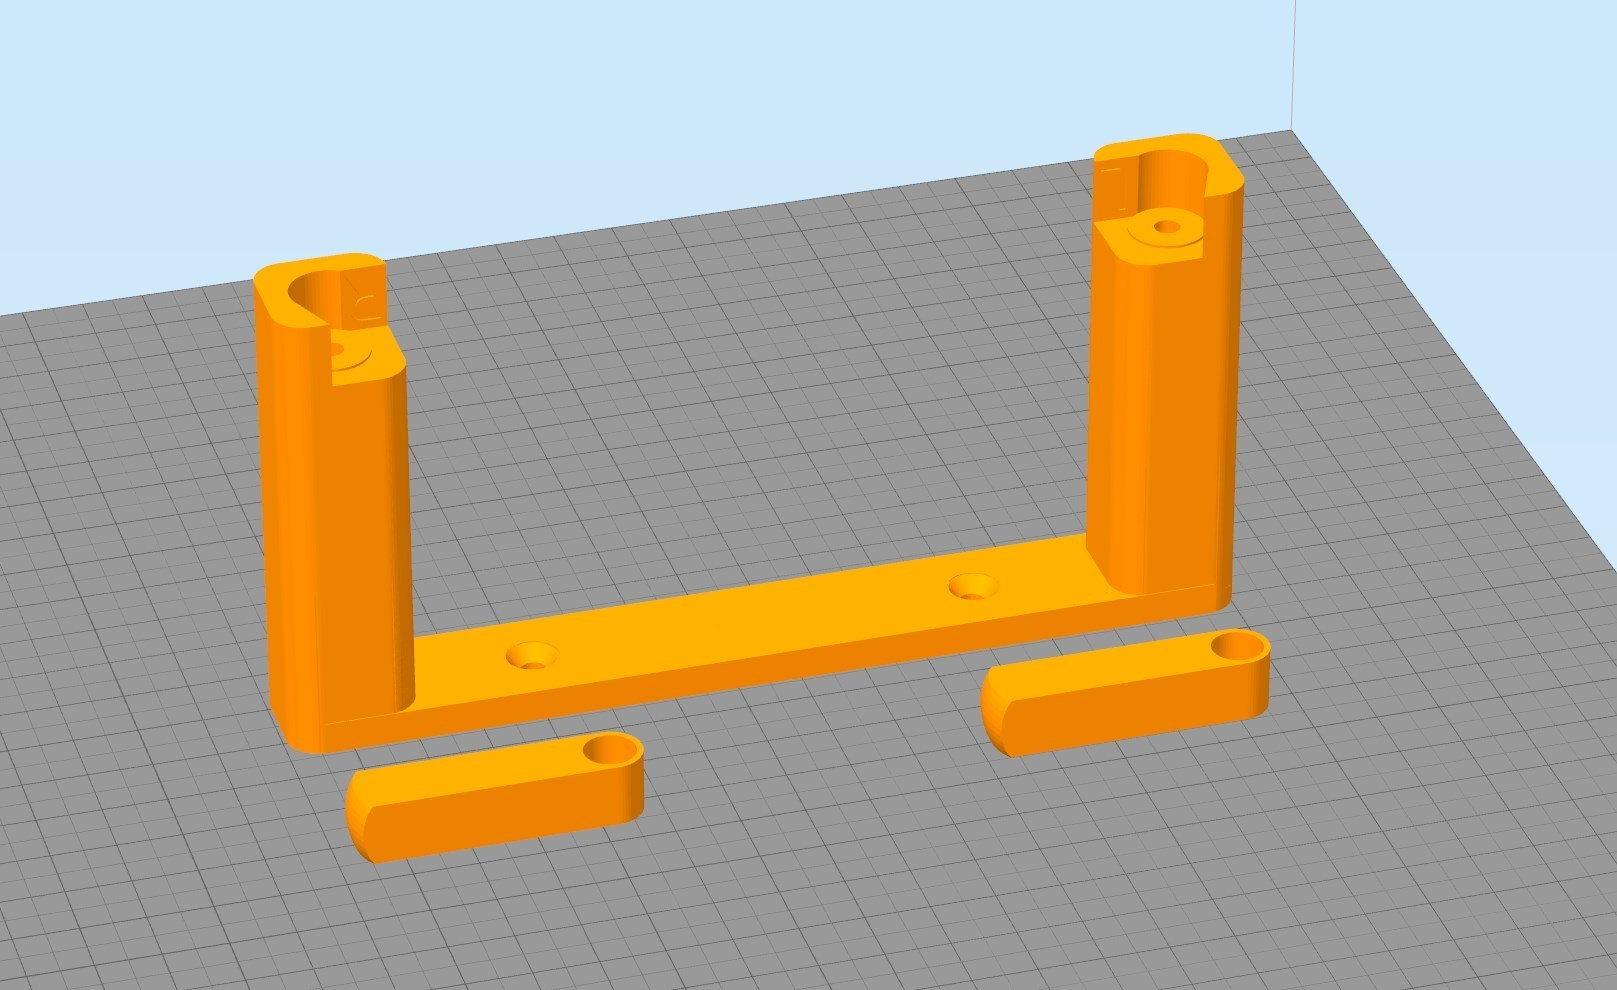 Simplify3D_2018-08-08_00-48-21.jpg Download free STL file stand rouleau WC remix • 3D printing model, Cyborg